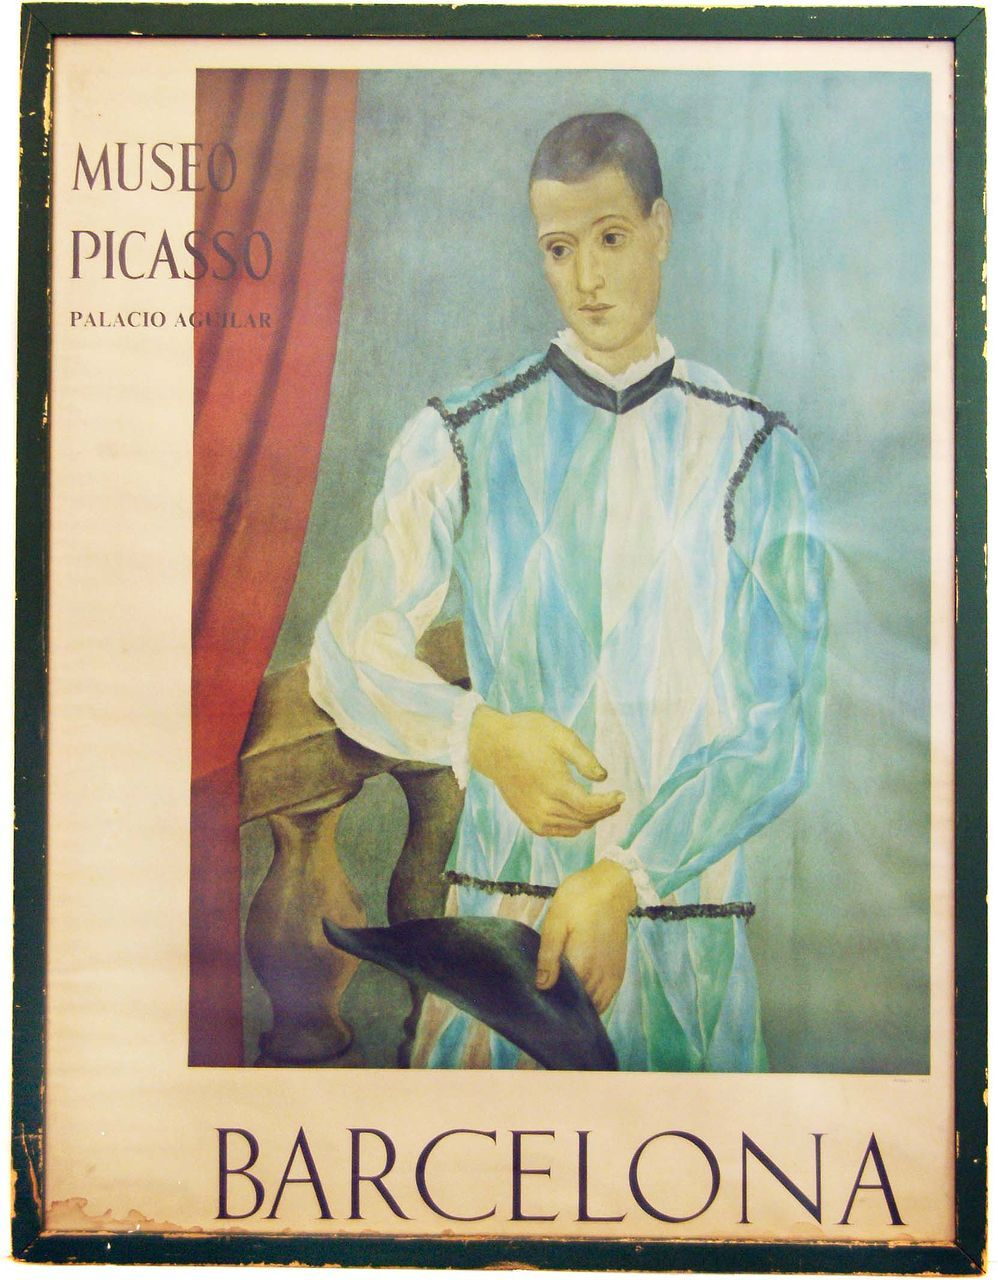 Pablo Picasso Museum Exhibit Poster from Barcelona